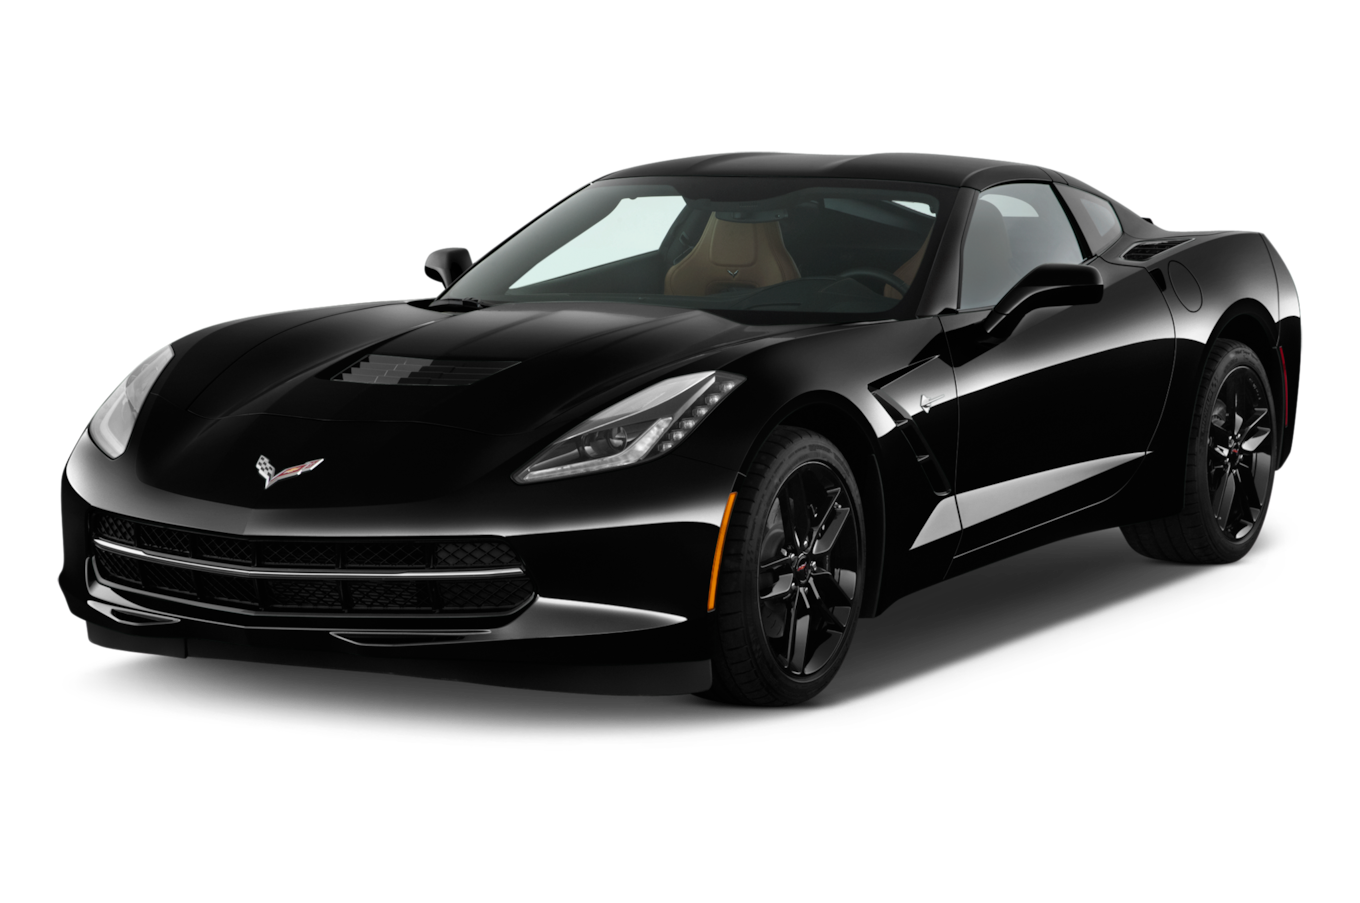 77 All New 2019 Chevrolet Corvette Price Configurations